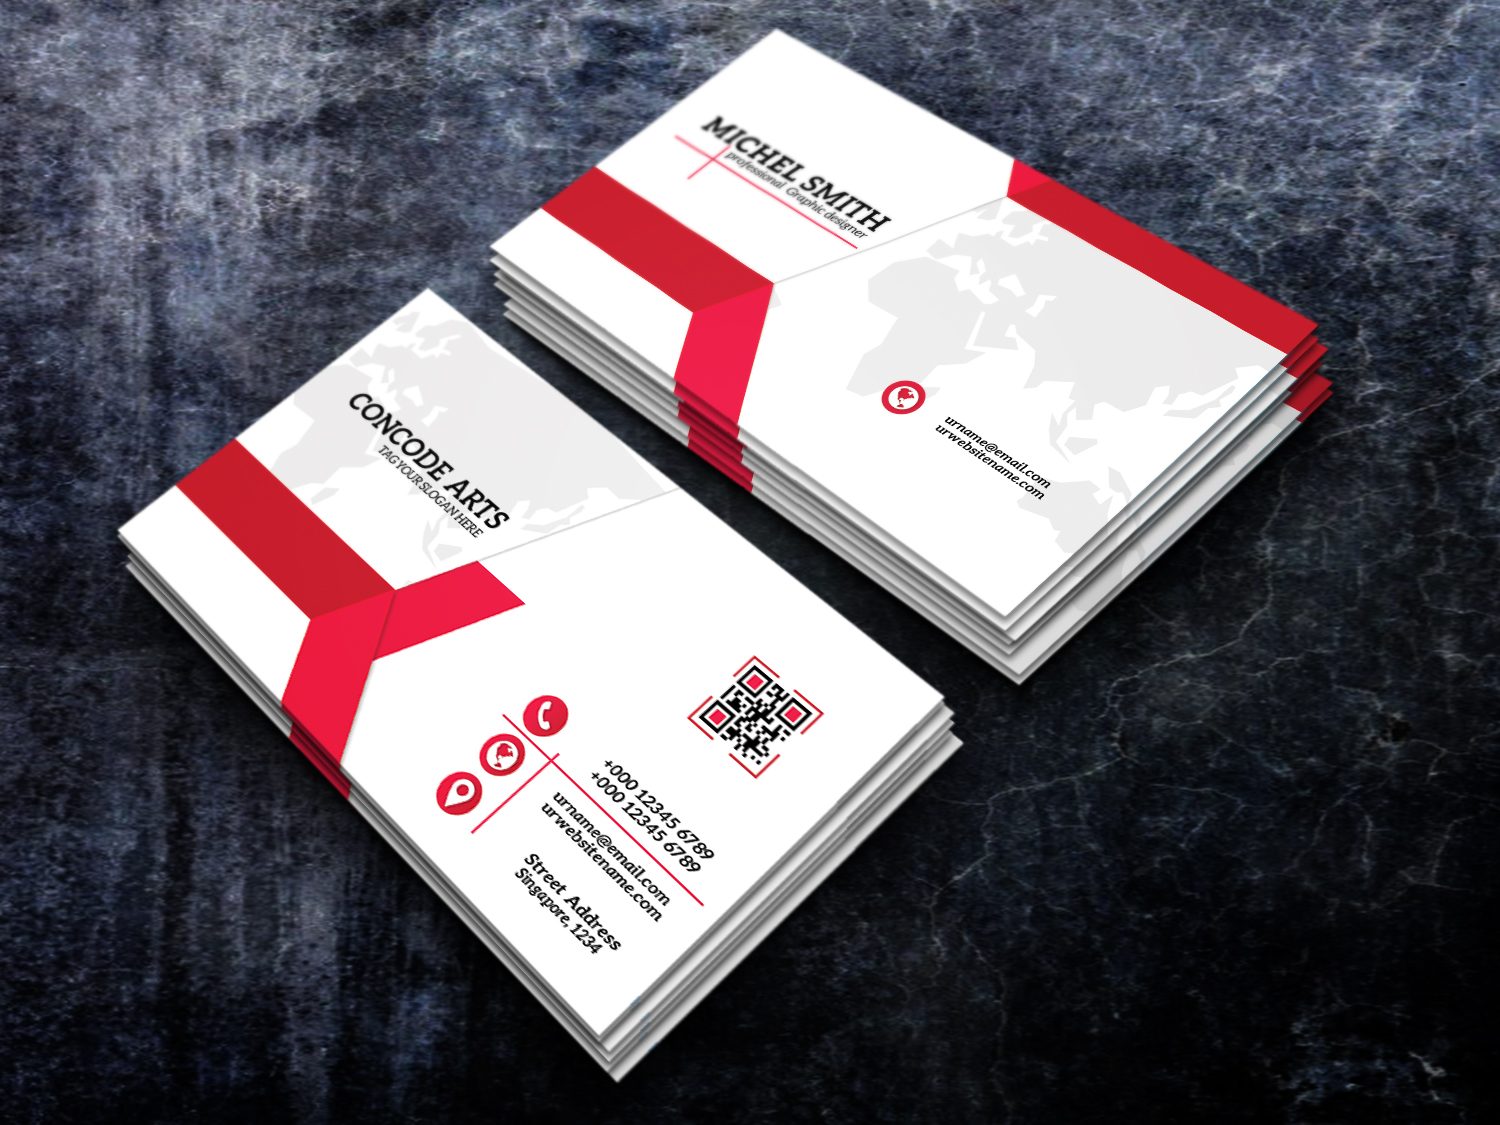 Simple business card vol 98 professional business card templates free download professional business cards this is a business card this template download contains 300 dpi print ready cmyk layerd psd files flashek Choice Image